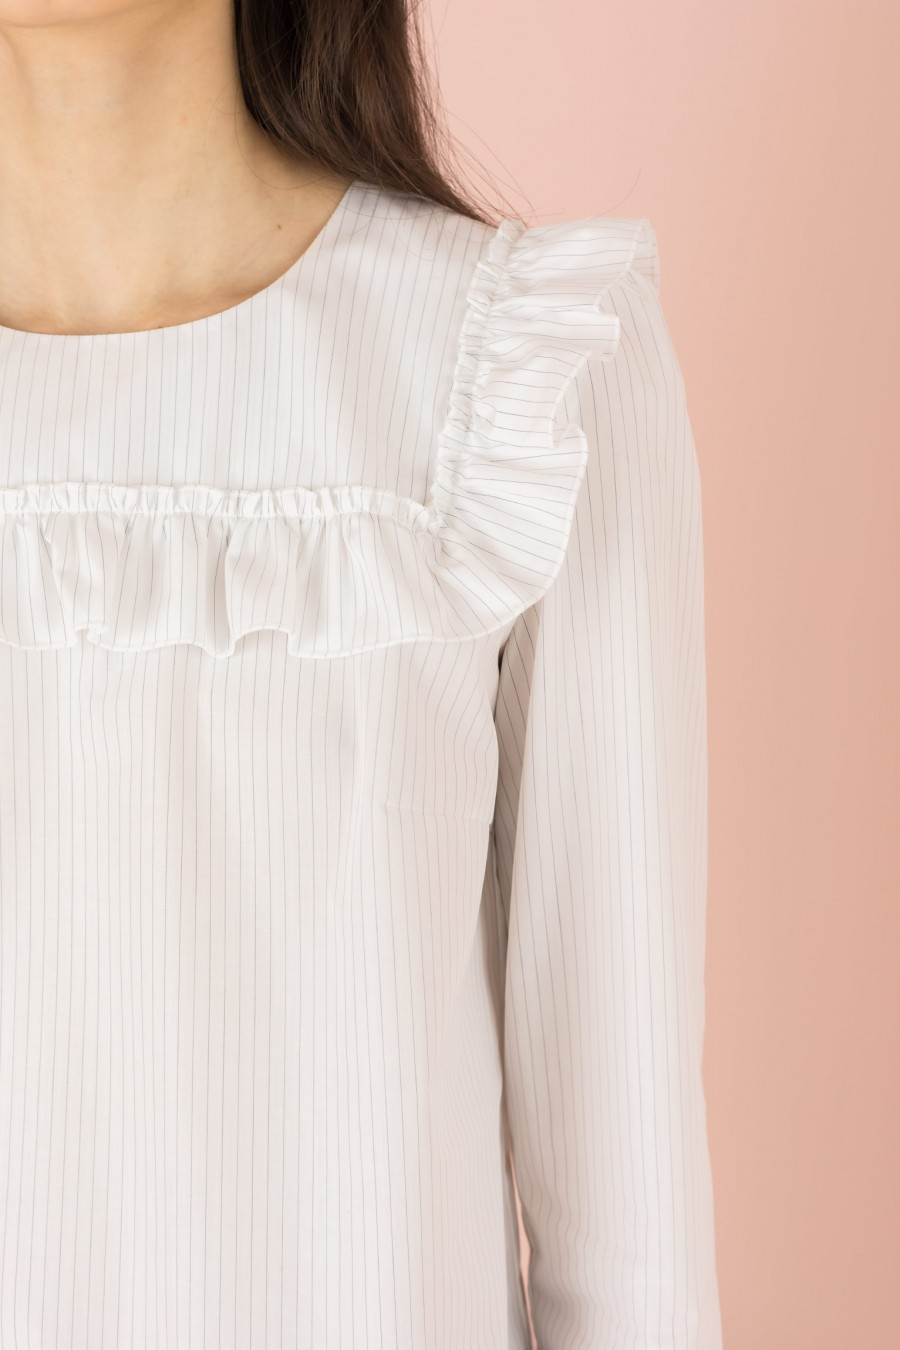 white striped shirt with yoke and ruffles